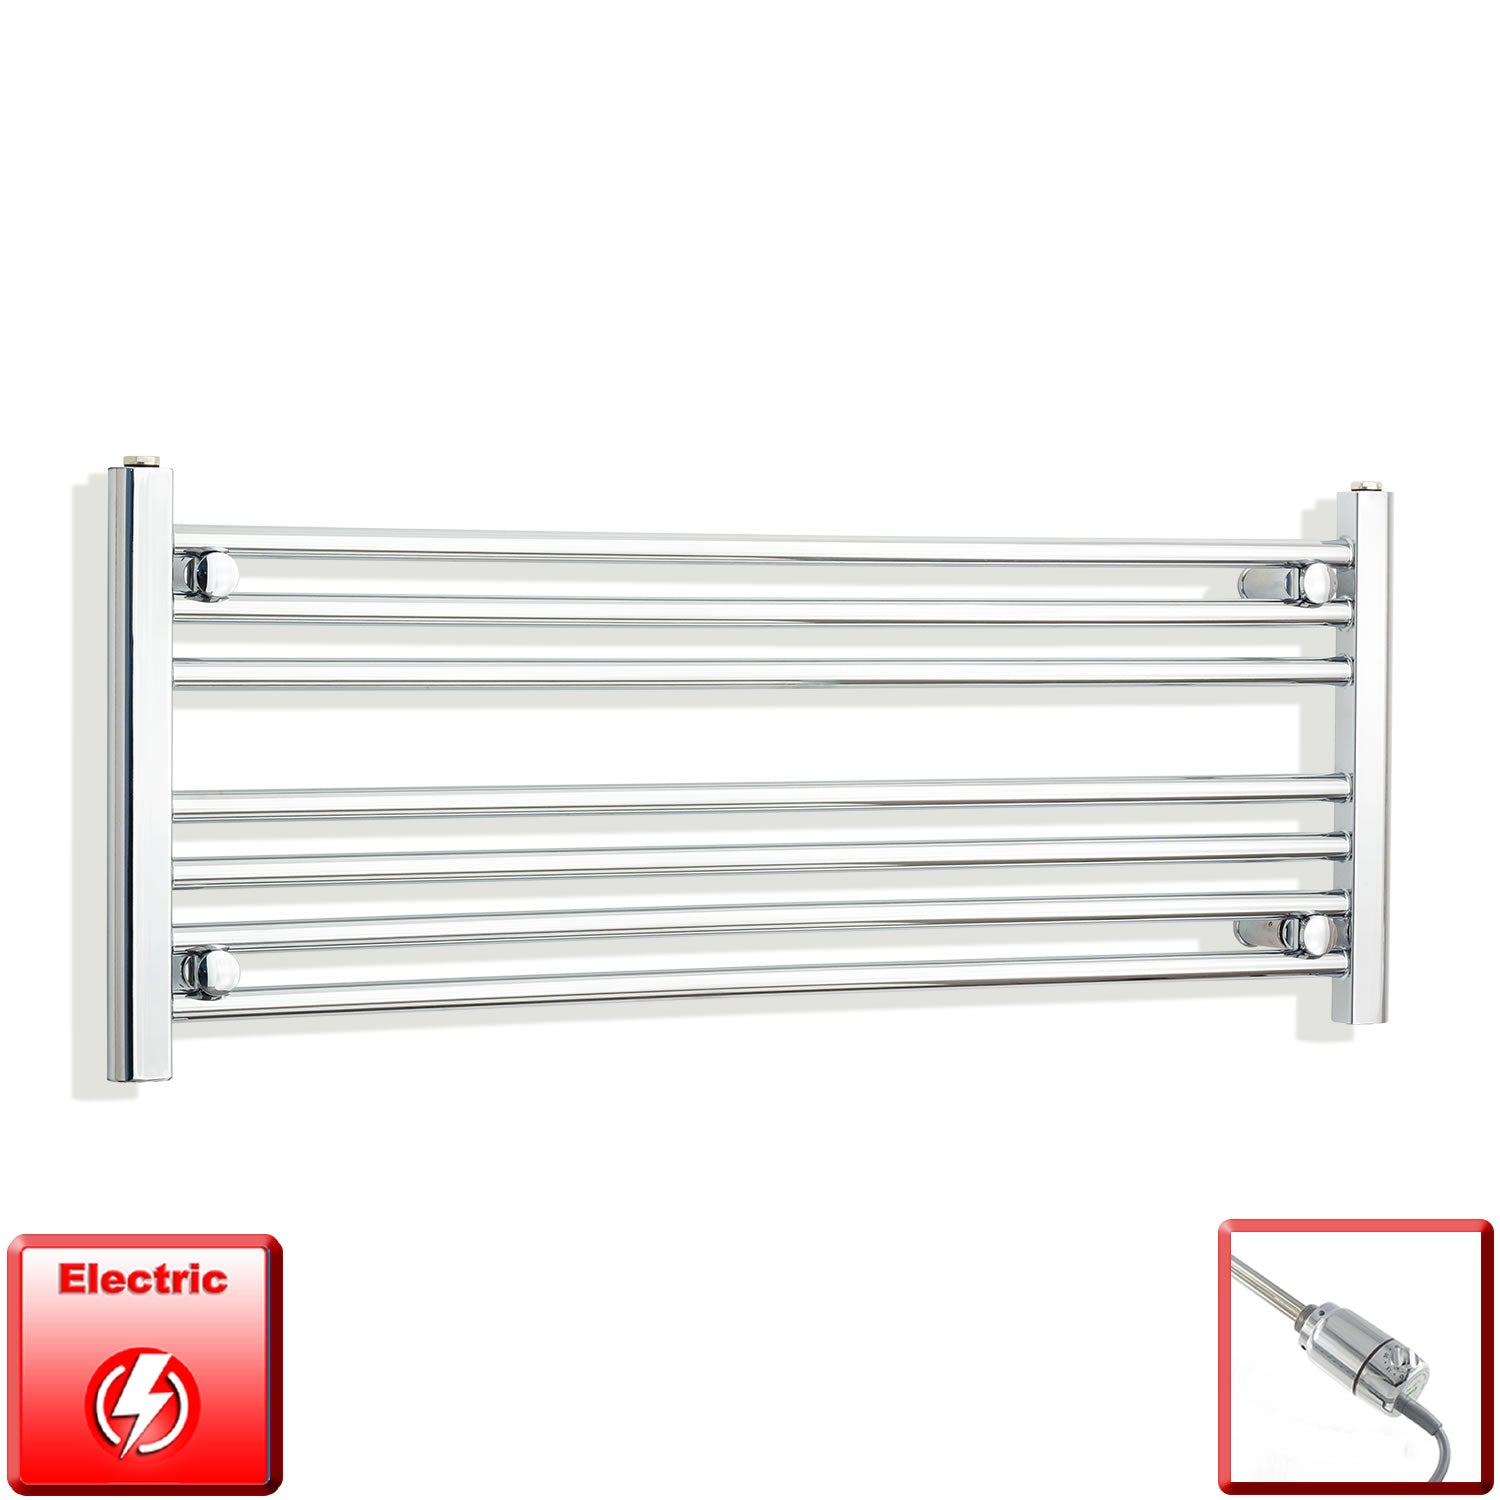 1200mm Wide 400mm High Flat Chrome Pre-Filled Electric Heated Towel Rail Radiator HTR,GT Thermostatic